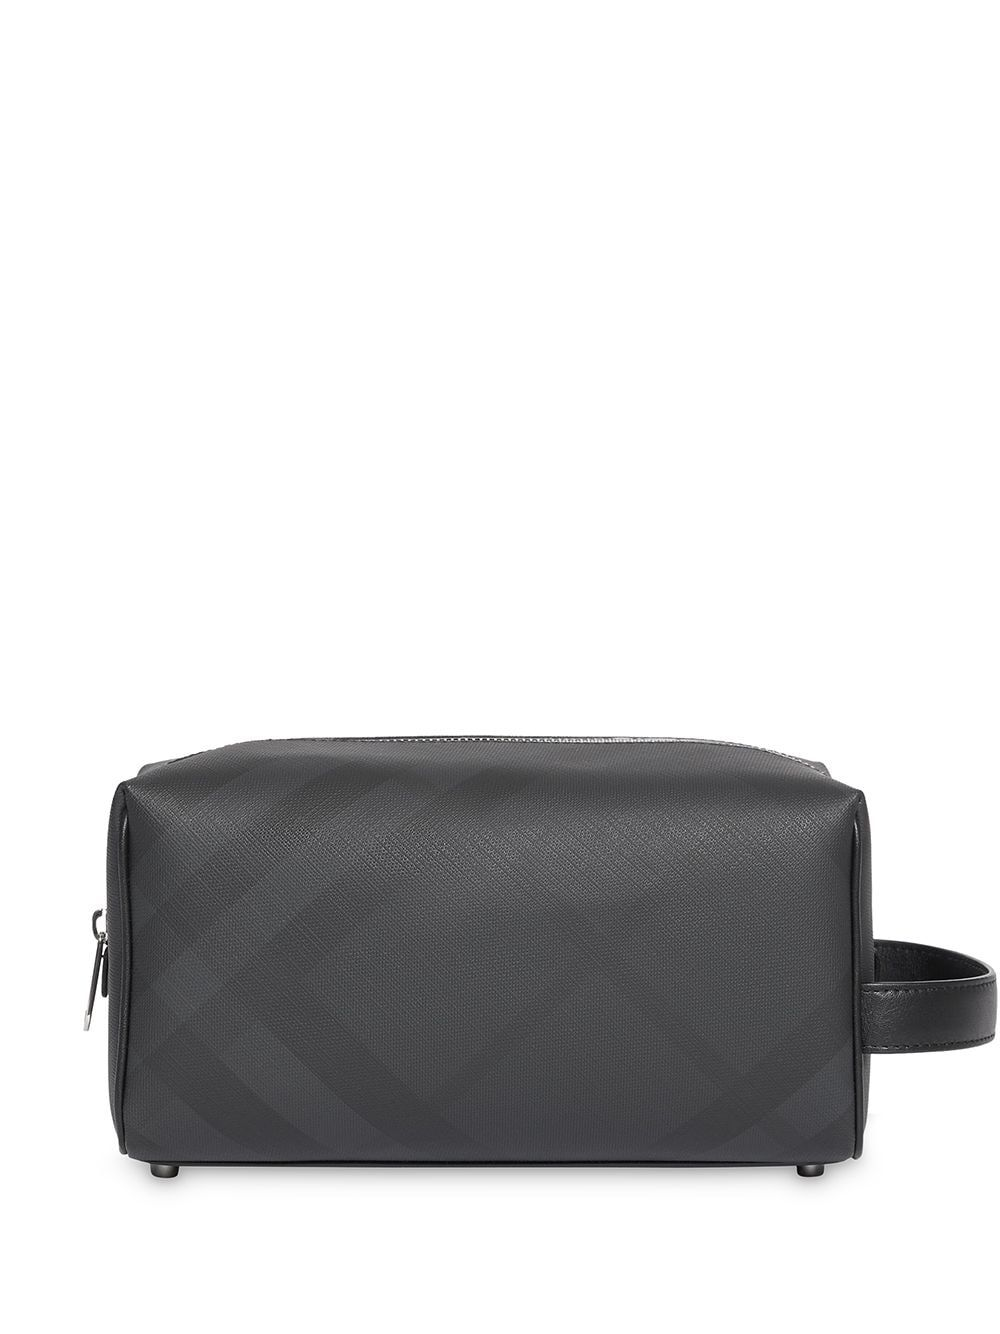 Burberry BURBERRY MEN'S BLACK POLYURETHANE BEAUTY CASE